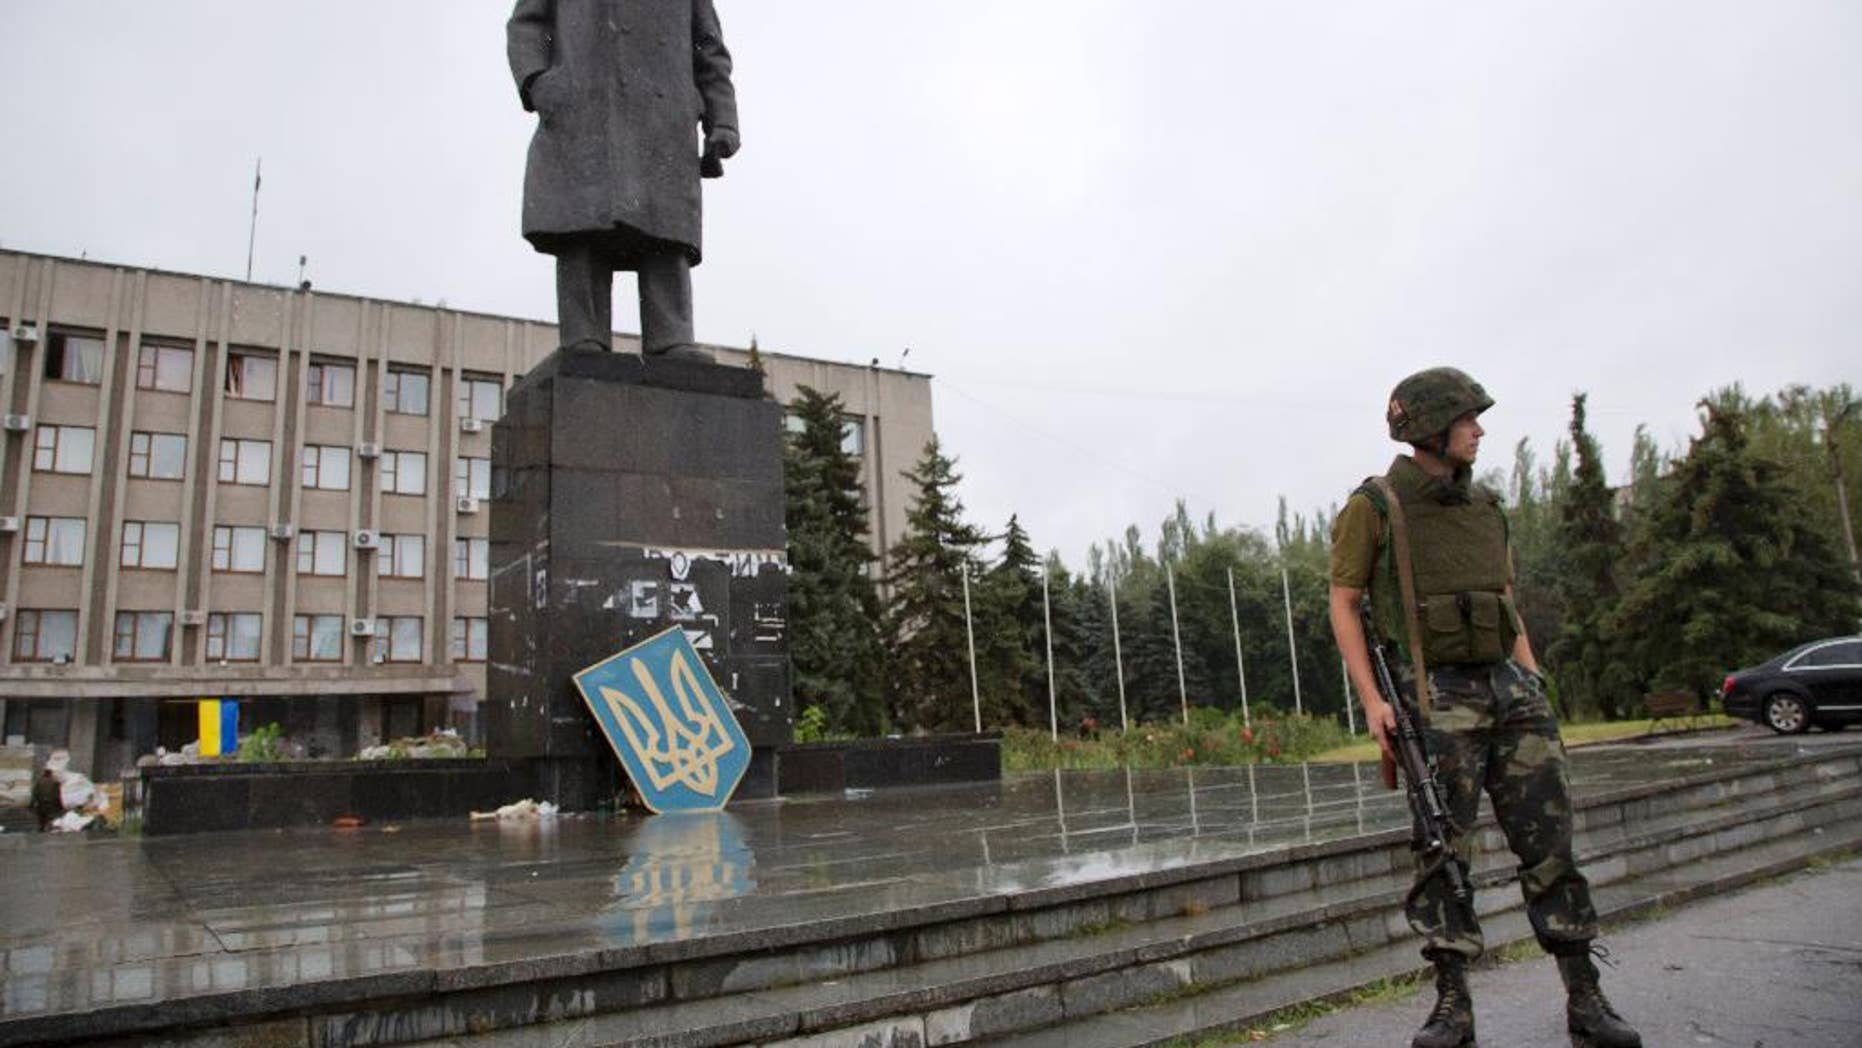 """A Ukrainian government army soldier guards the central square in the city of Slovyansk, Donetsk Region, eastern Ukraine Monday, July 7, 2014, with the Ukrainian State emblem leaning against a statue of Soviet Union founder Vladimir Lenin. Ukraine's president Petro Poroshenko has called the capture of the Pro-Russian separatist stronghold of Slovyansk a """"turning point"""" in the fight for control of the country's east. (AP Photo/Dmitry Lovetsky)"""